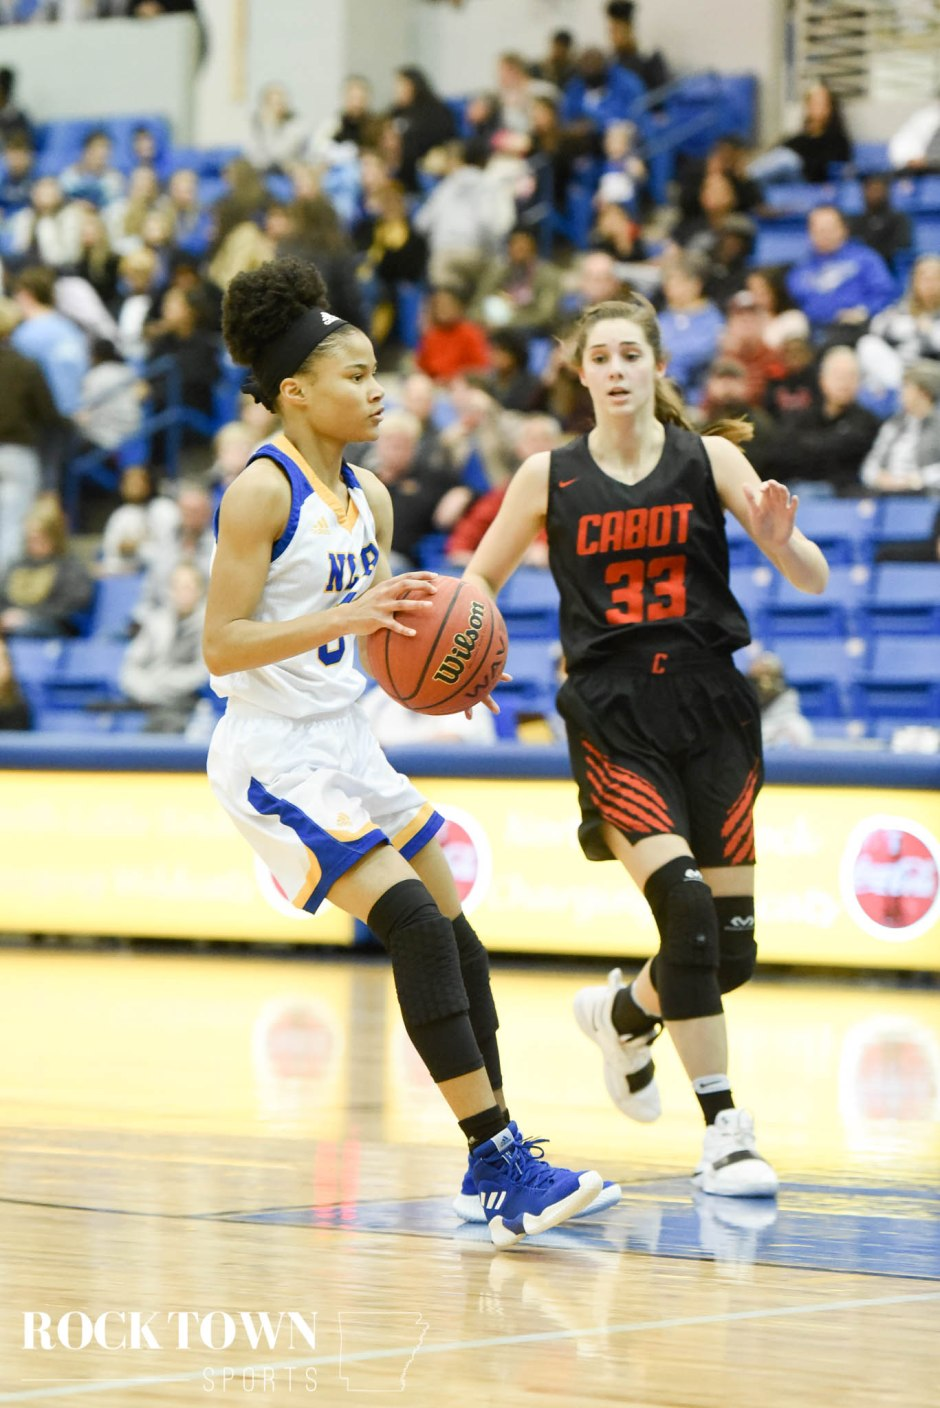 nlr_cabot_basketball_2019_(int)-14